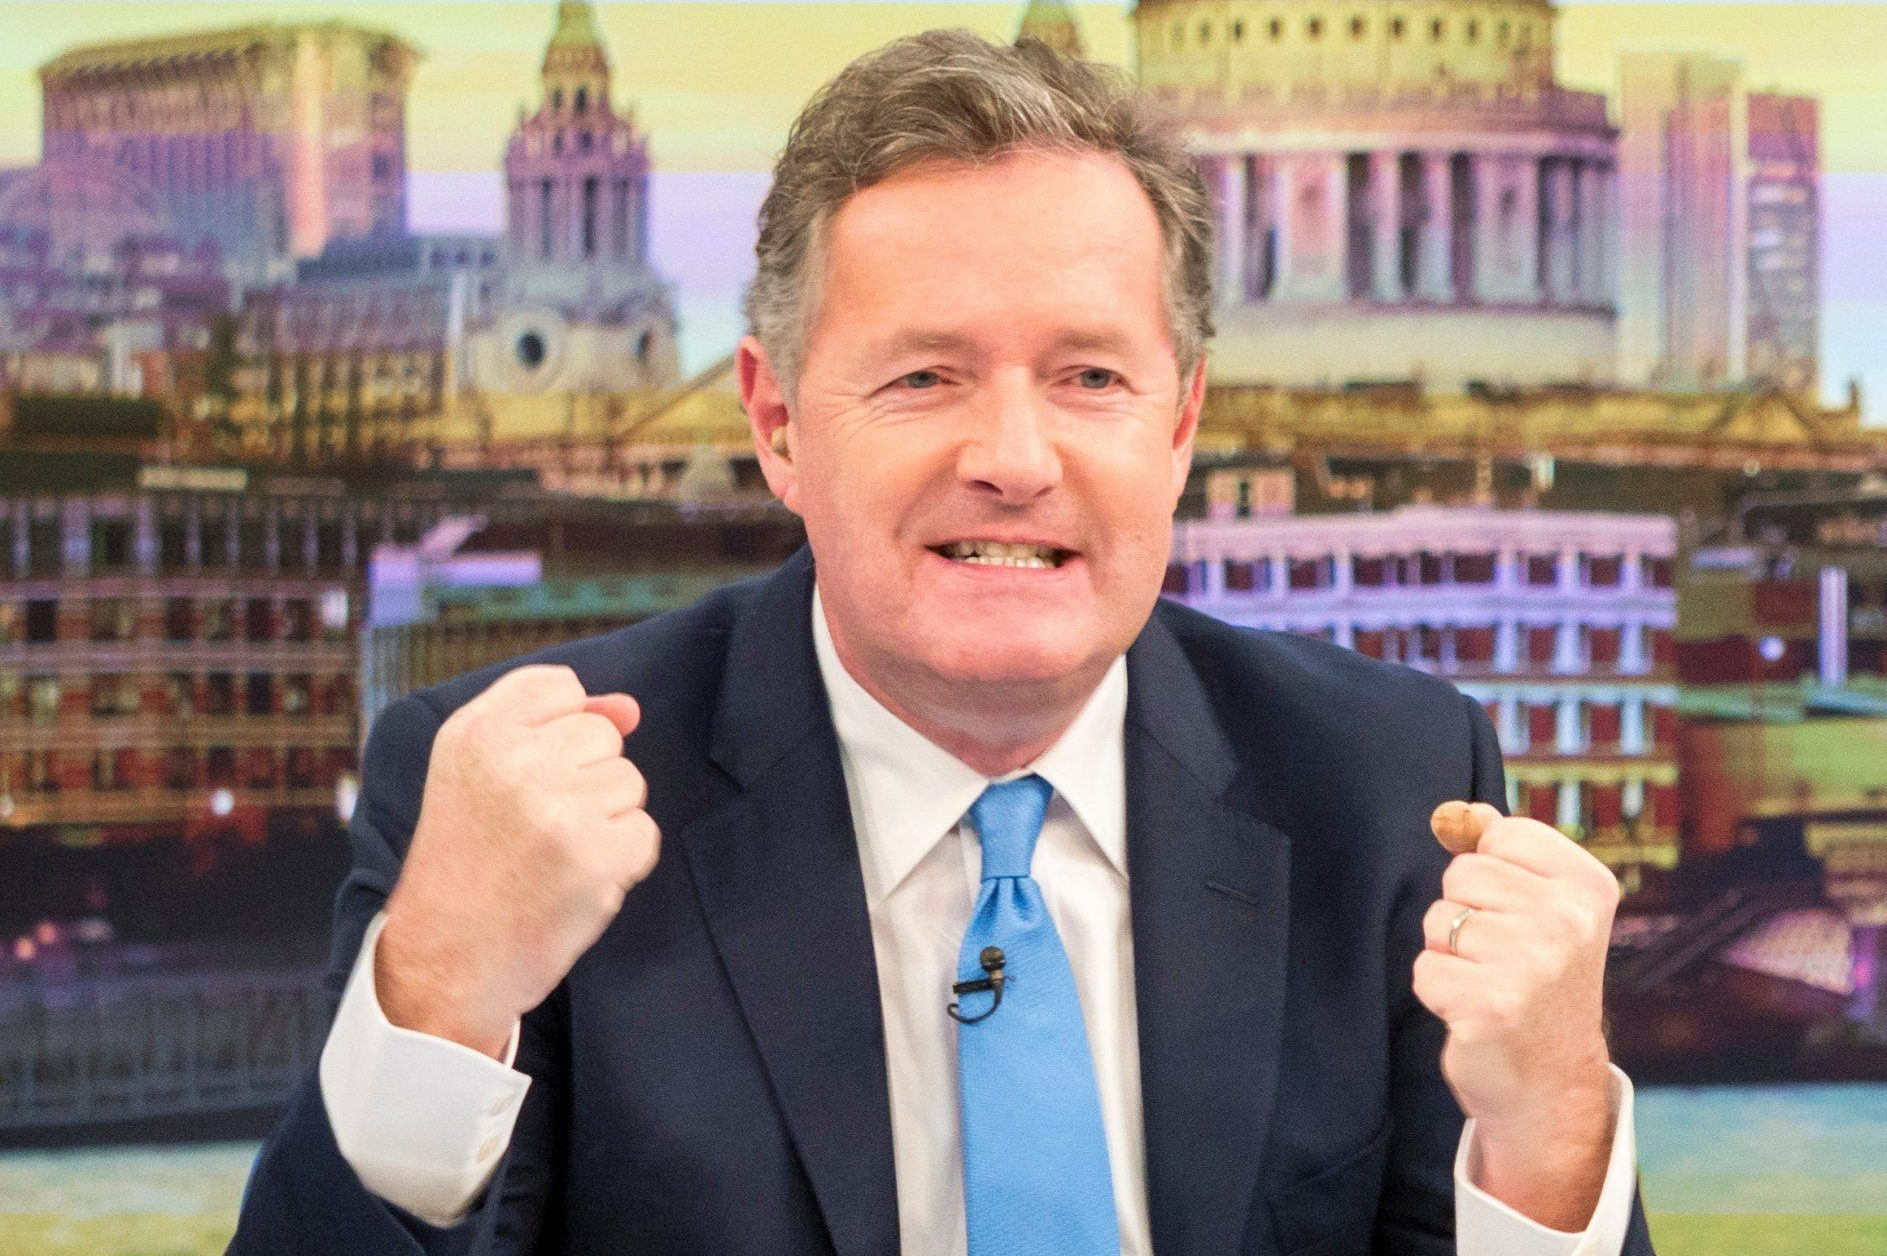 EDITORIAL USE ONLY. NO MERCHANDISING Mandatory Credit: Photo by S Meddle/ITV/REX/Shutterstock (9472235v) Piers Morgan and Susanna Reid 'Good Morning Britain' TV show, London, UK - 21 Mar 2018